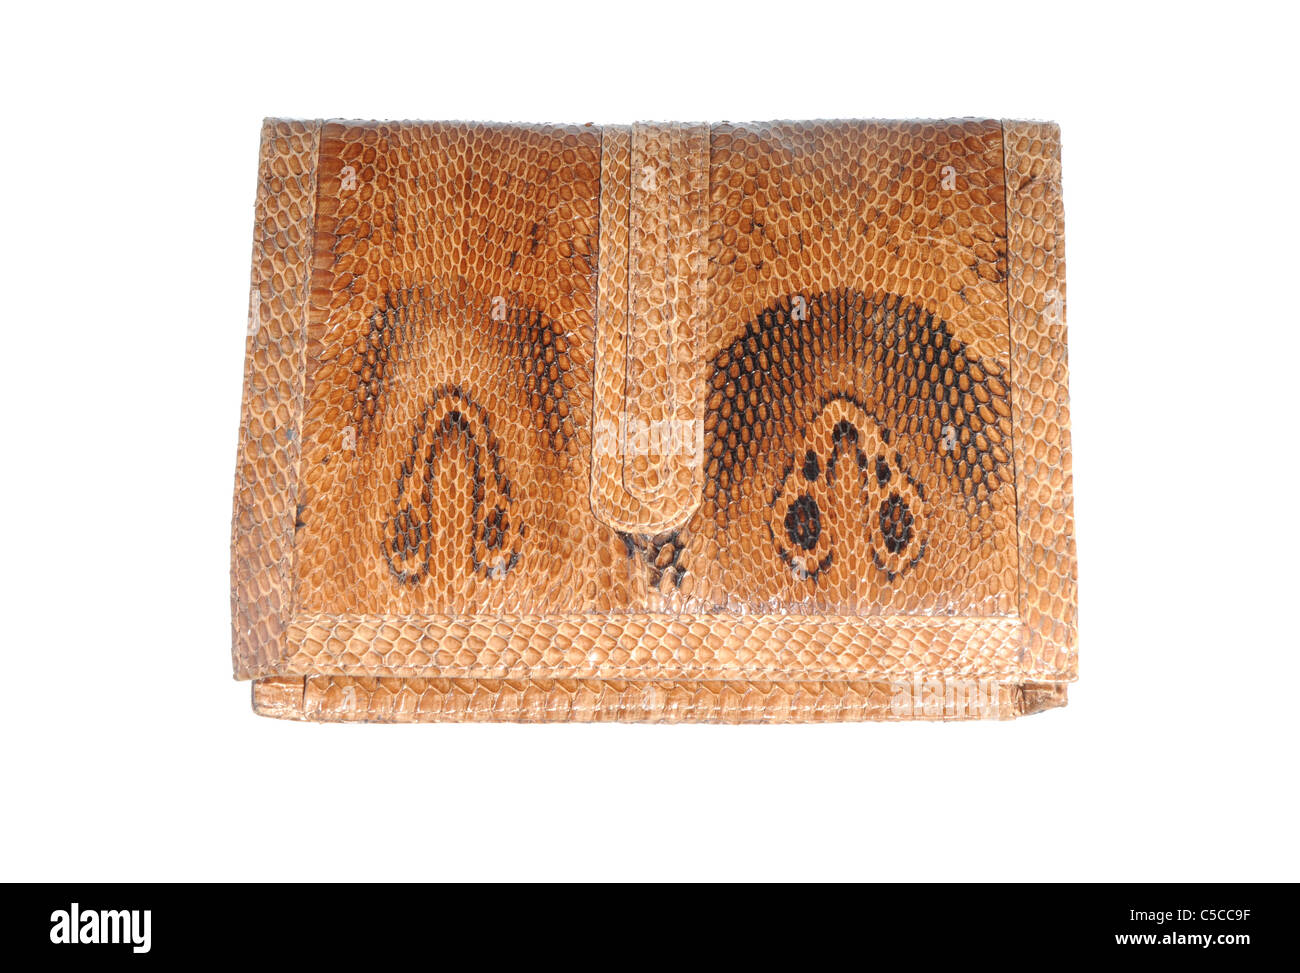 Illegal endangered species product from cites list asian cobra illegal endangered species product from cites list asian cobra leather wallet biocorpaavc Image collections